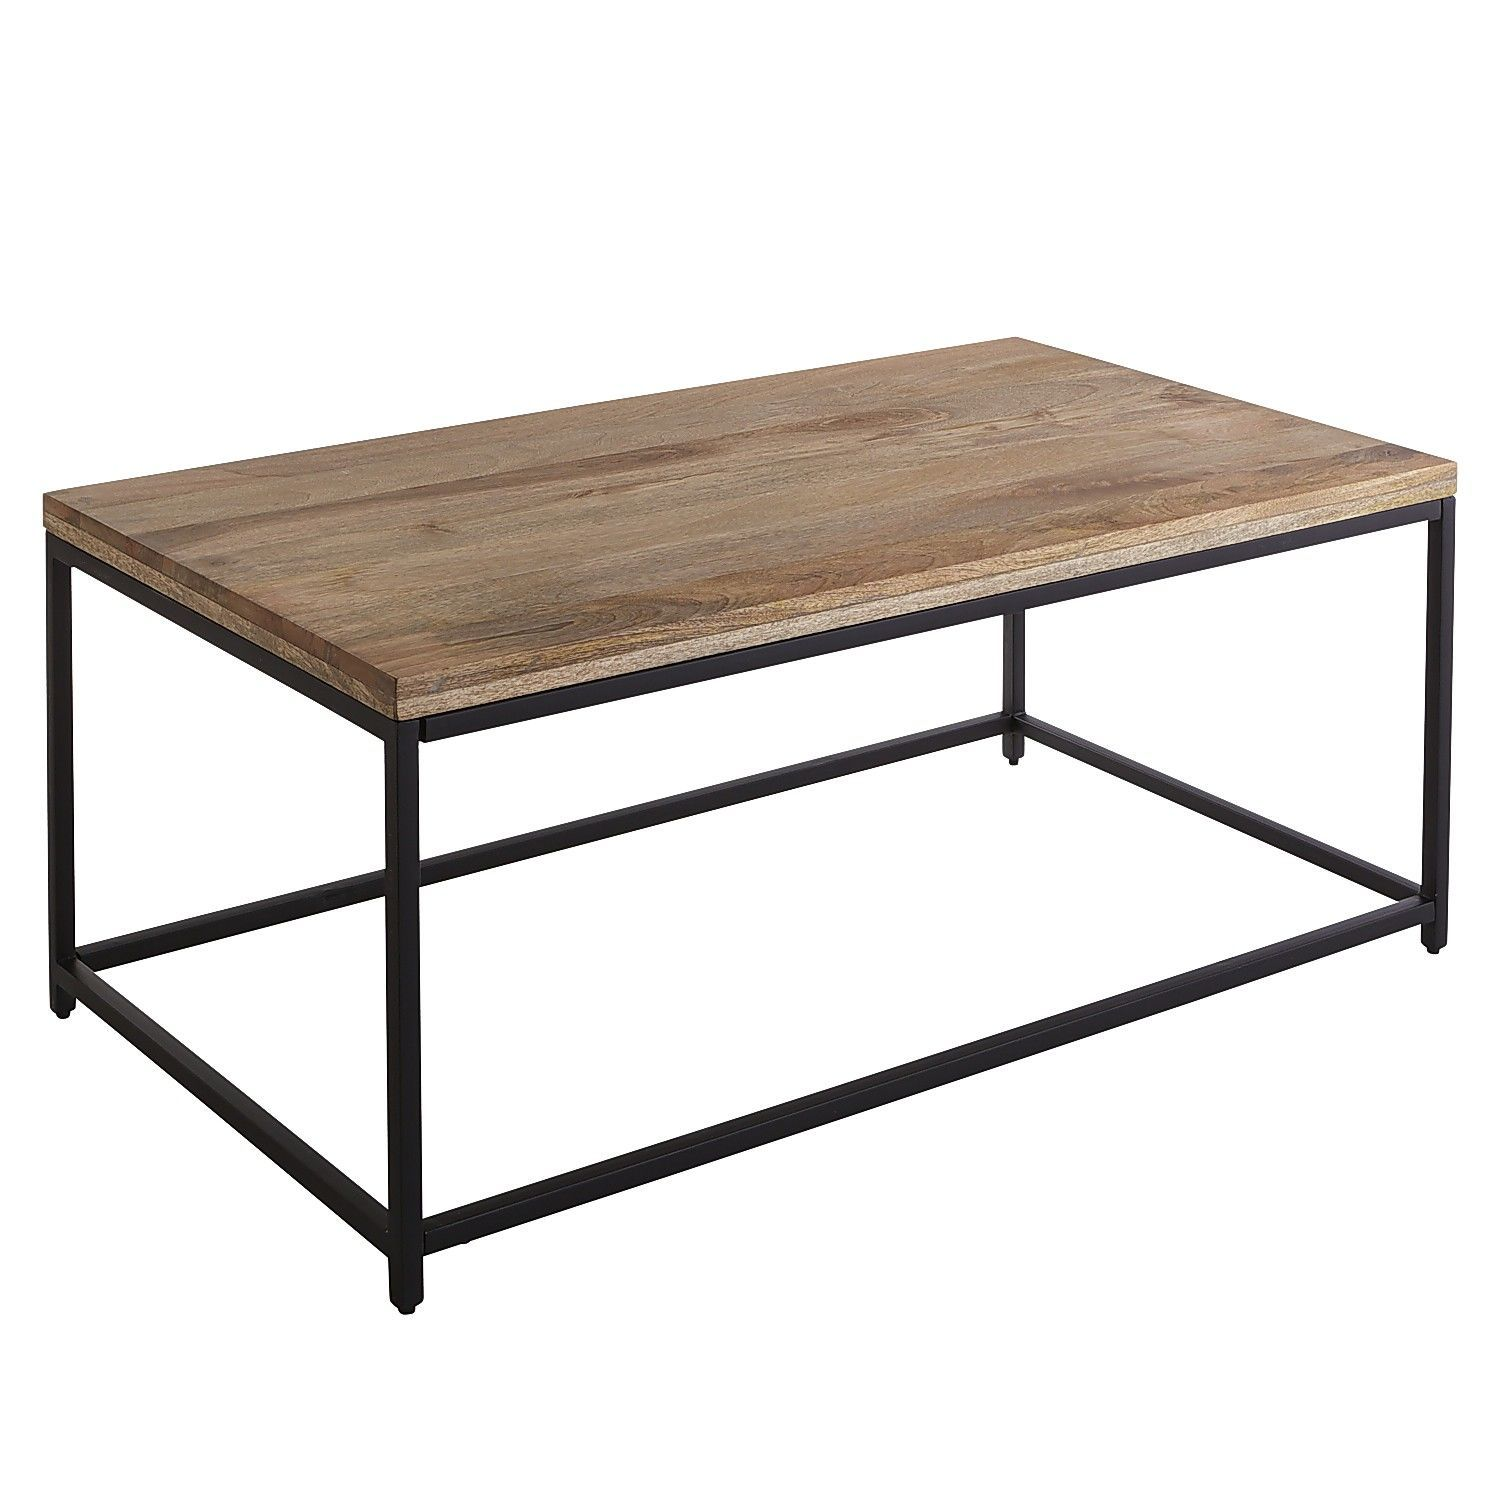 Takat Natural Mango Wood Coffee Table